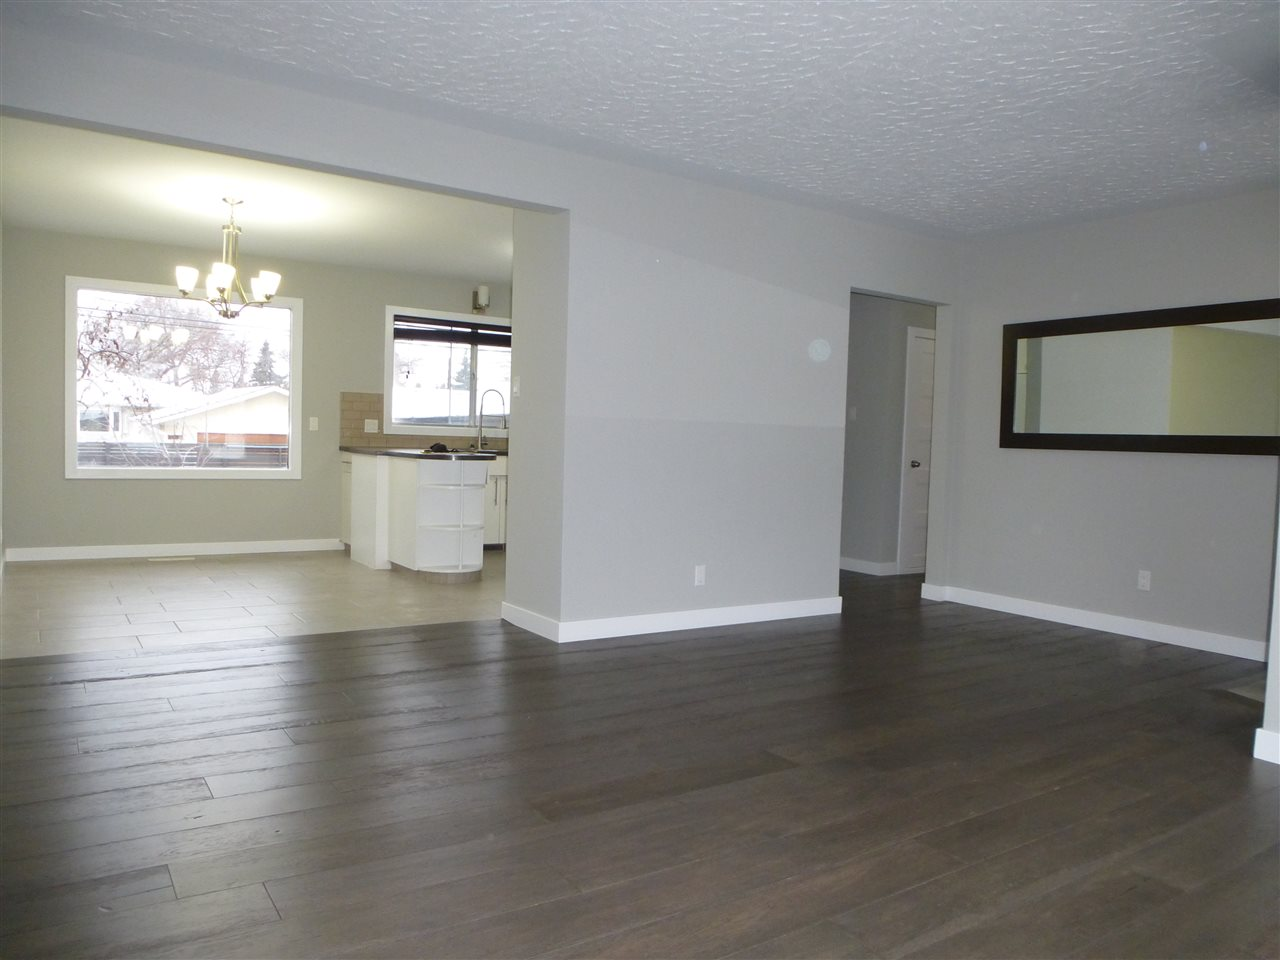 Photo 5: 8810 159A ST NW in Edmonton: Zone 22 House for sale : MLS(r) # E4044366